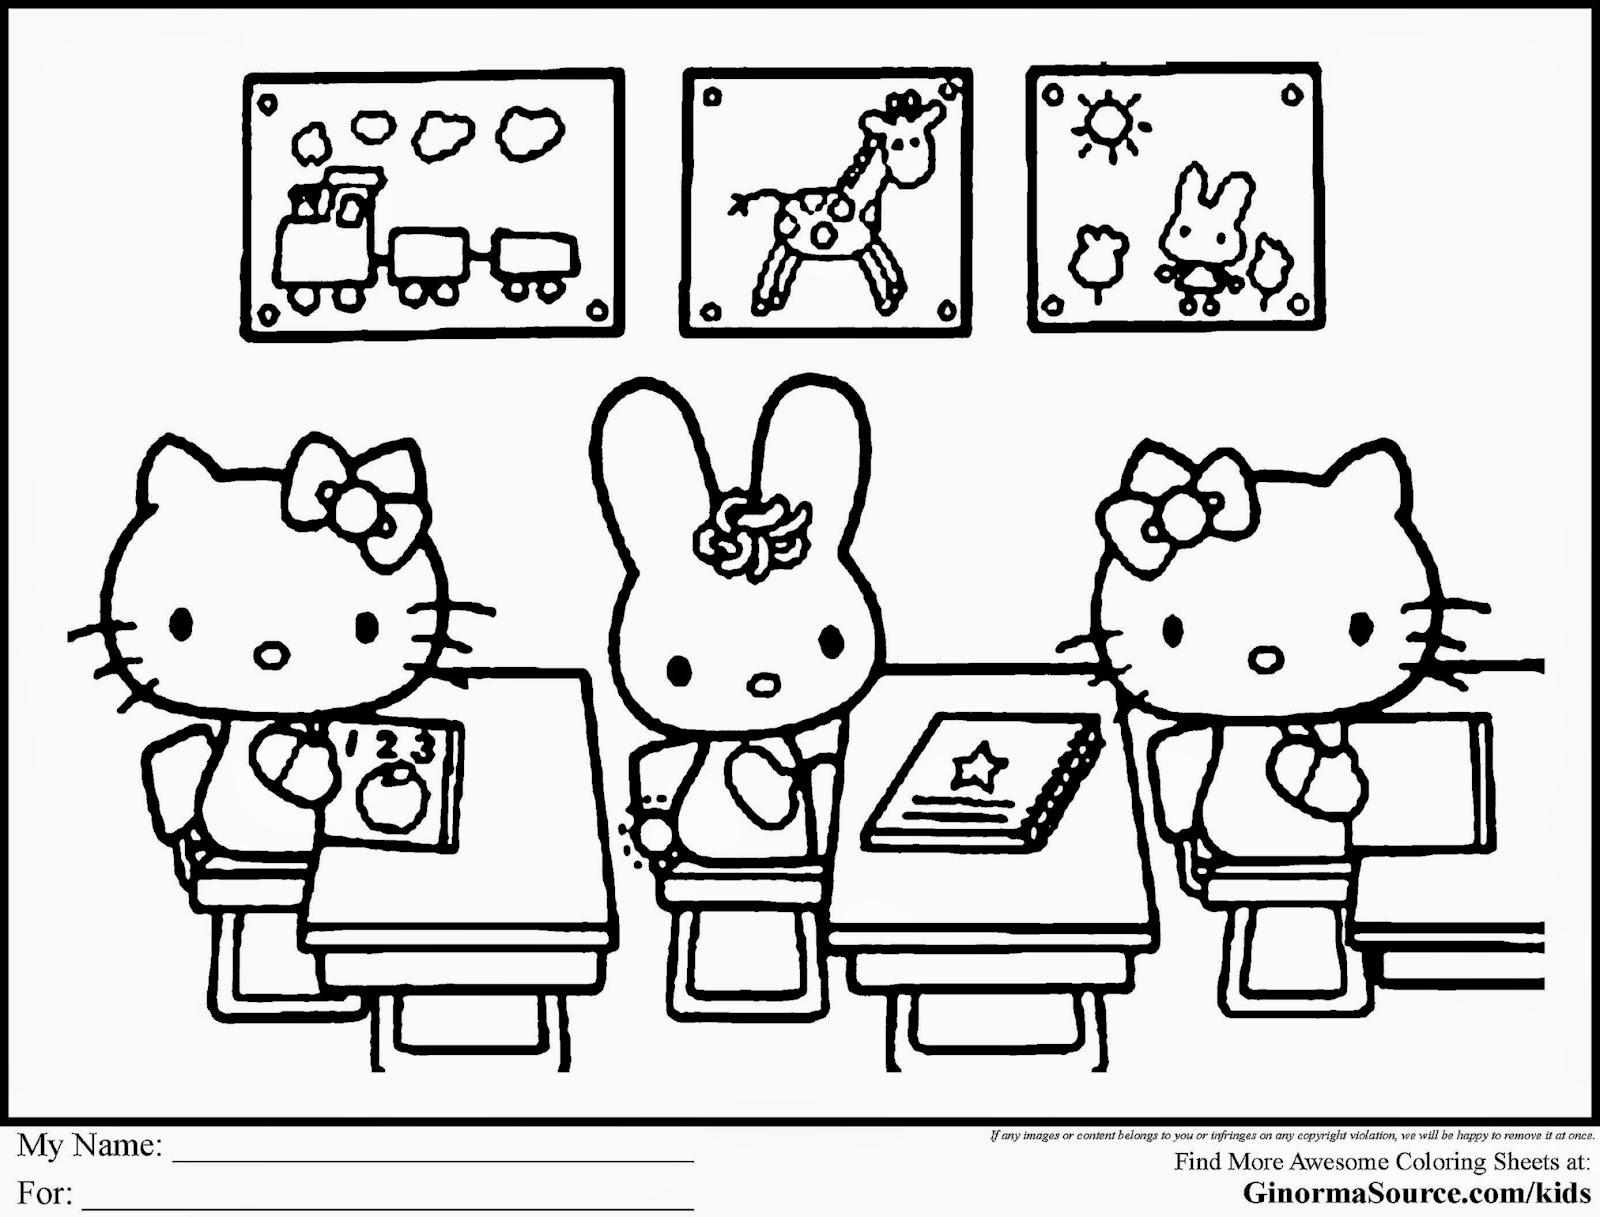 Back To School Coloring Sheets | Free Coloring Sheet